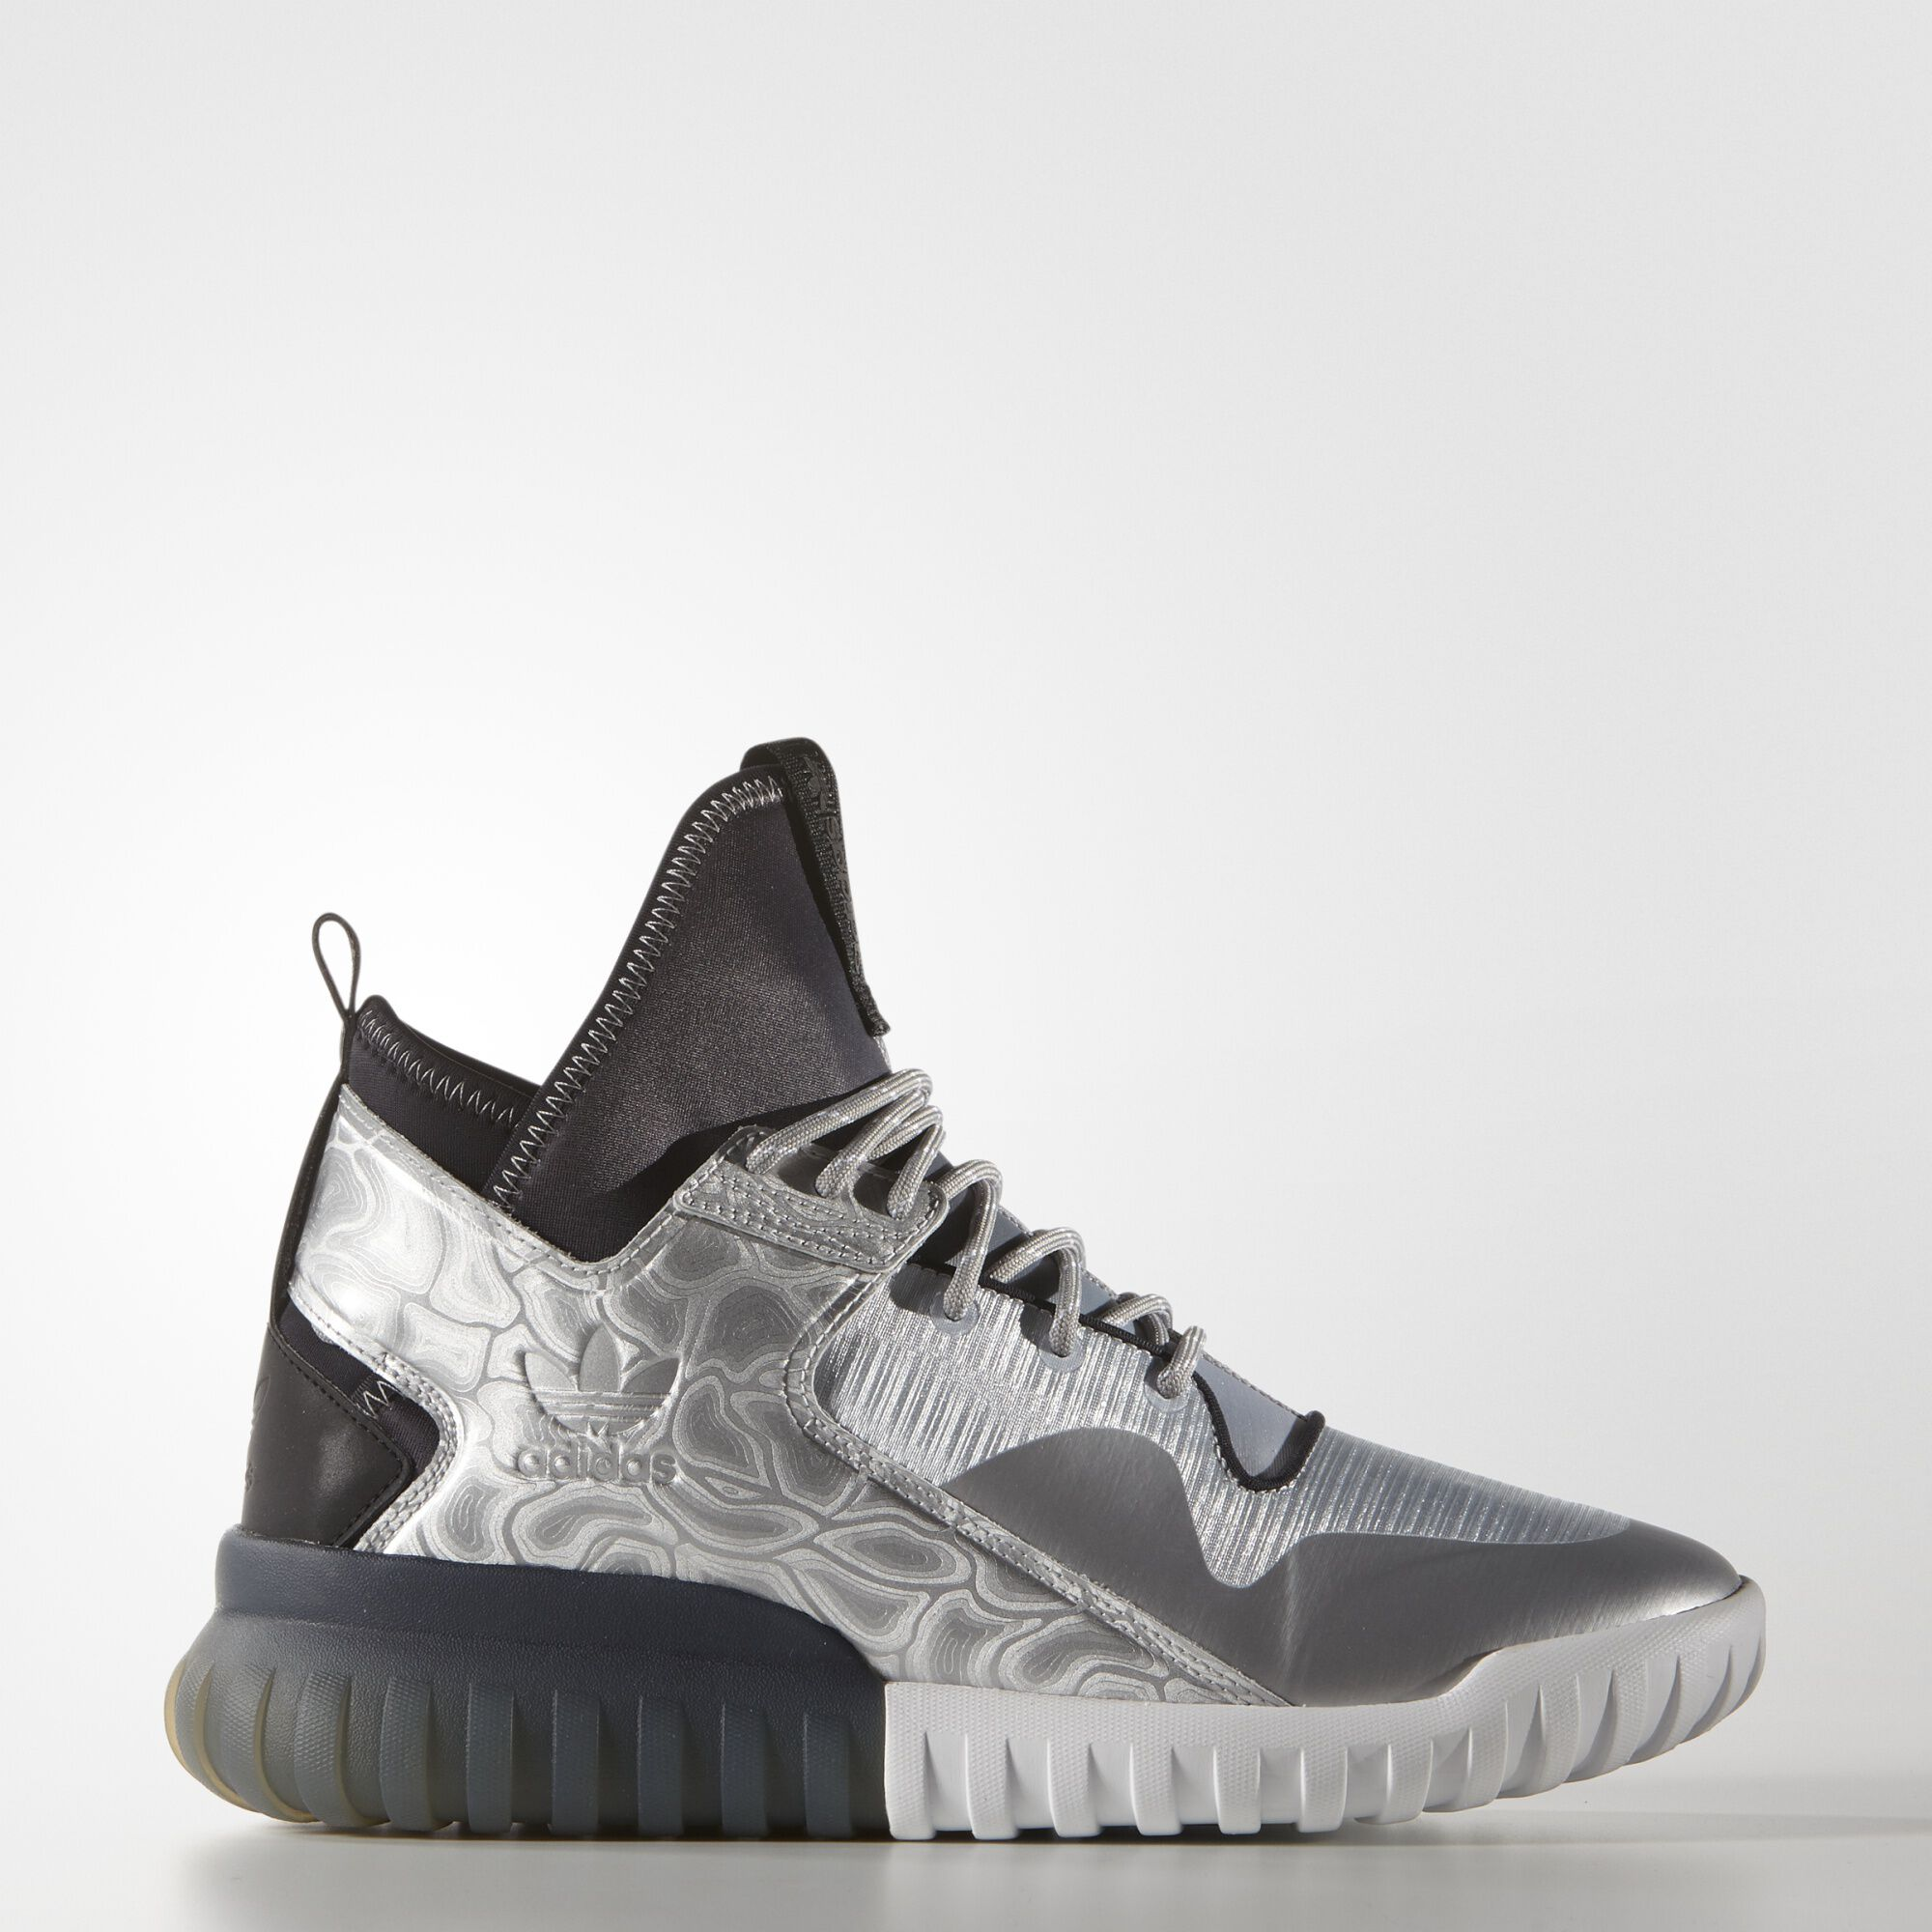 Adidas Originals Tubular Nova Primeknit Black Sneakers S 74917